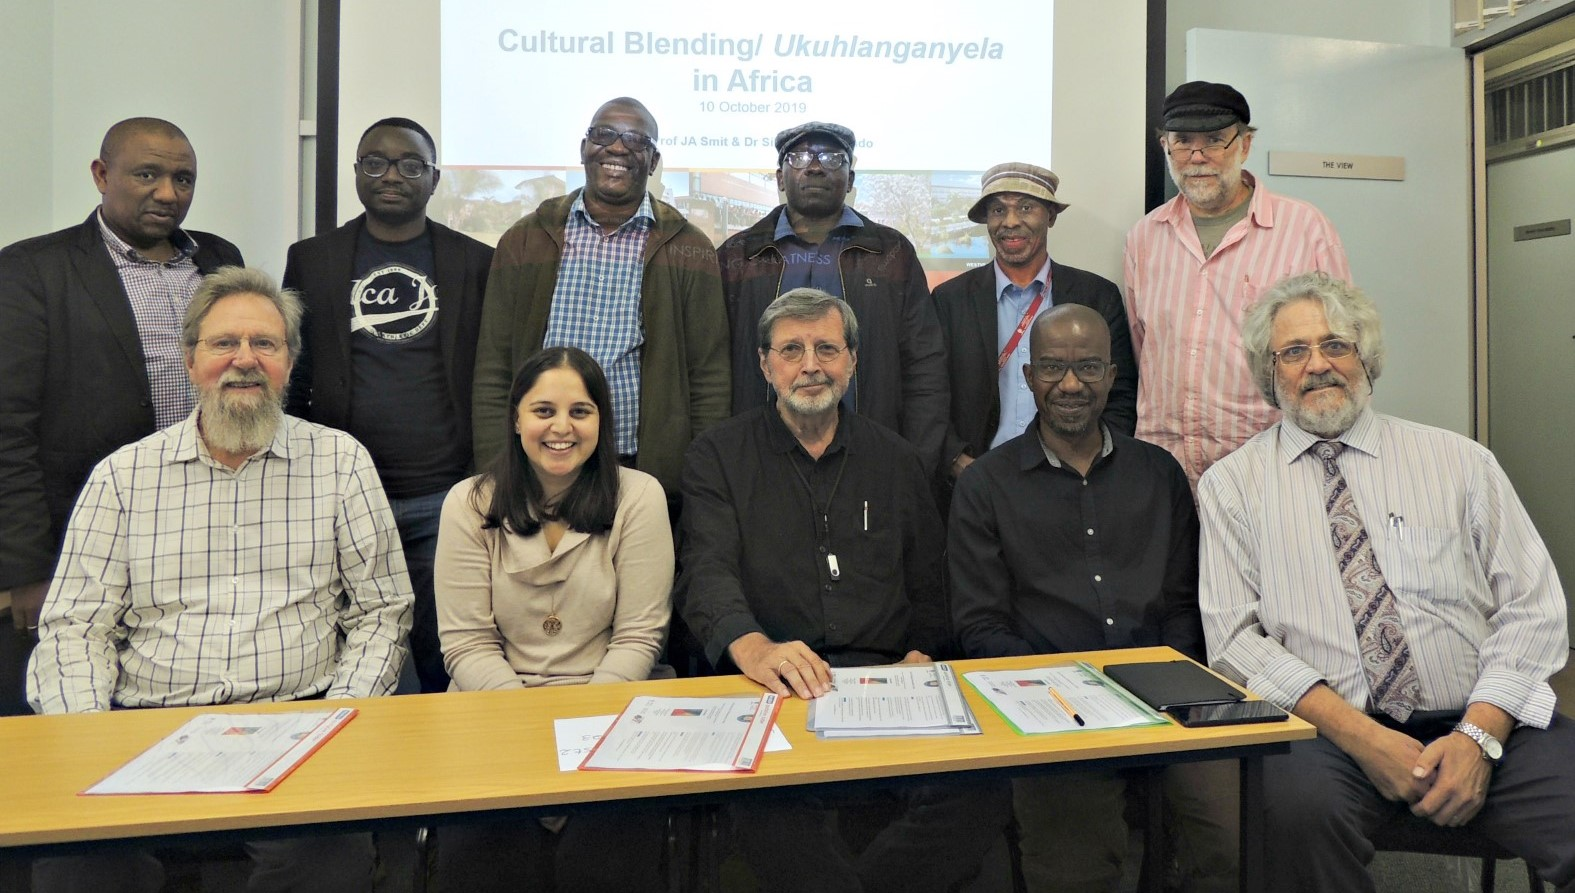 Highlights from the first Interdisciplinary Cultural Blending/ Ukuhlanganyela in Africa Colloquium.